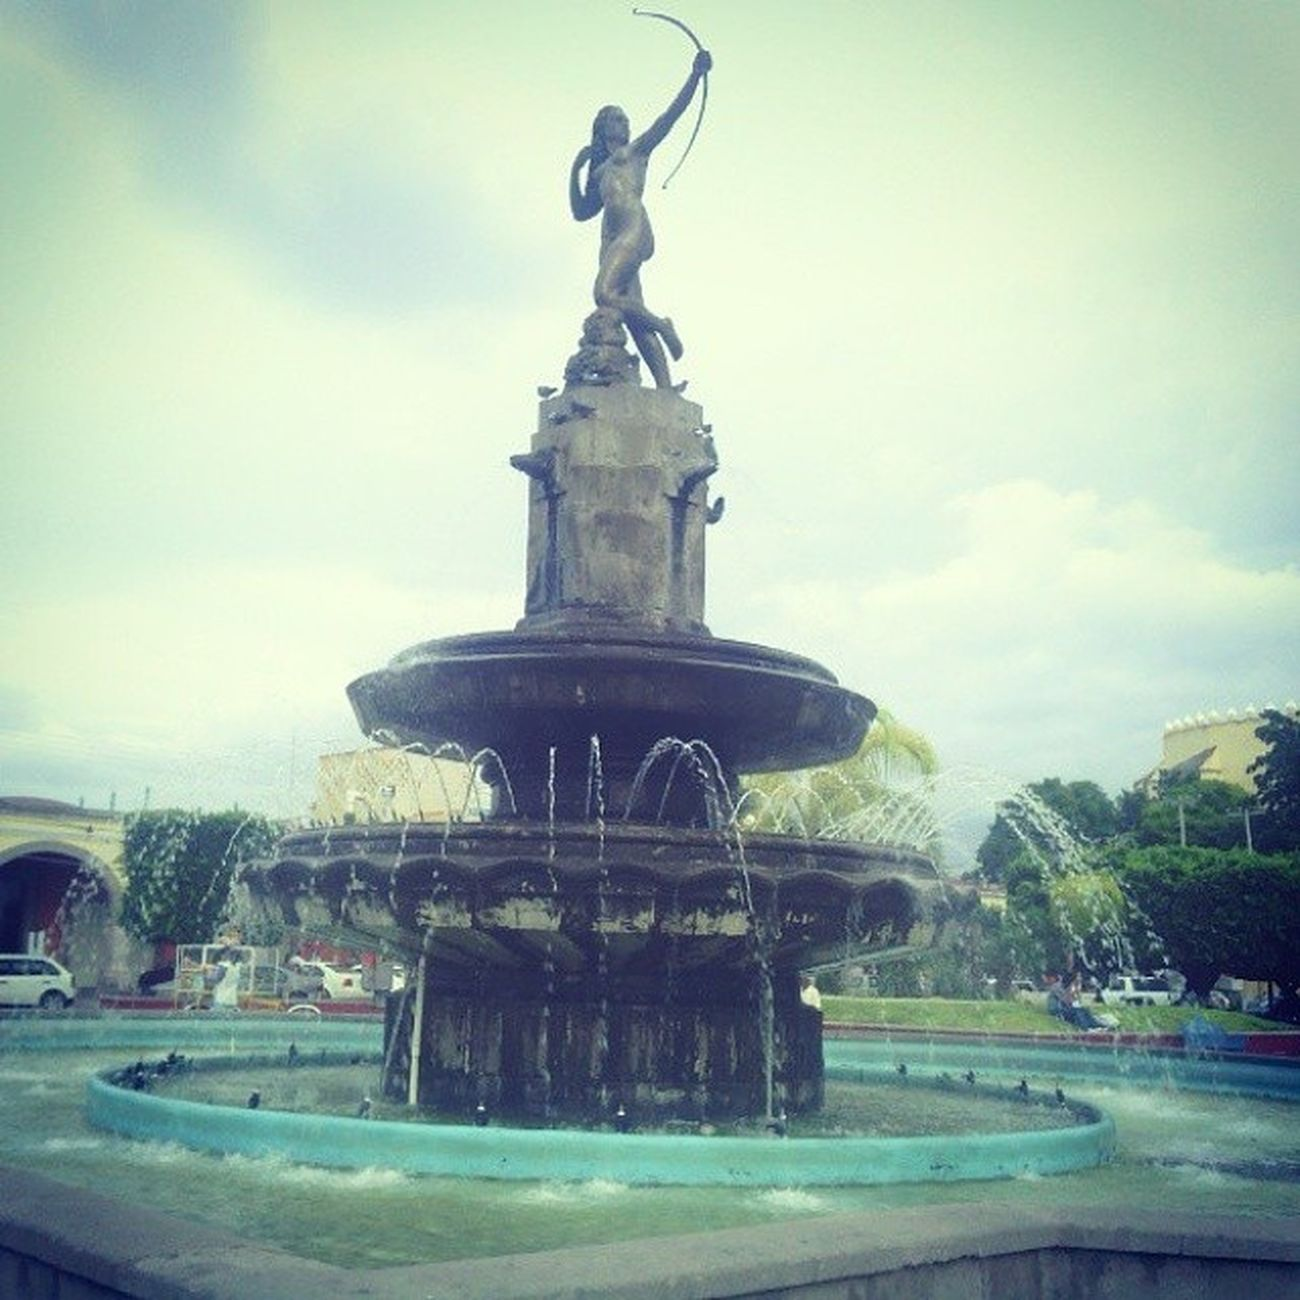 I Remember Sitting At This Fountain Waiting To Buy Some Ice Cream When I Went In 2005 :') It Was Unique :') ❤ I Miss It :'3 IxmiquilpanHgo ImFromThere Mexico